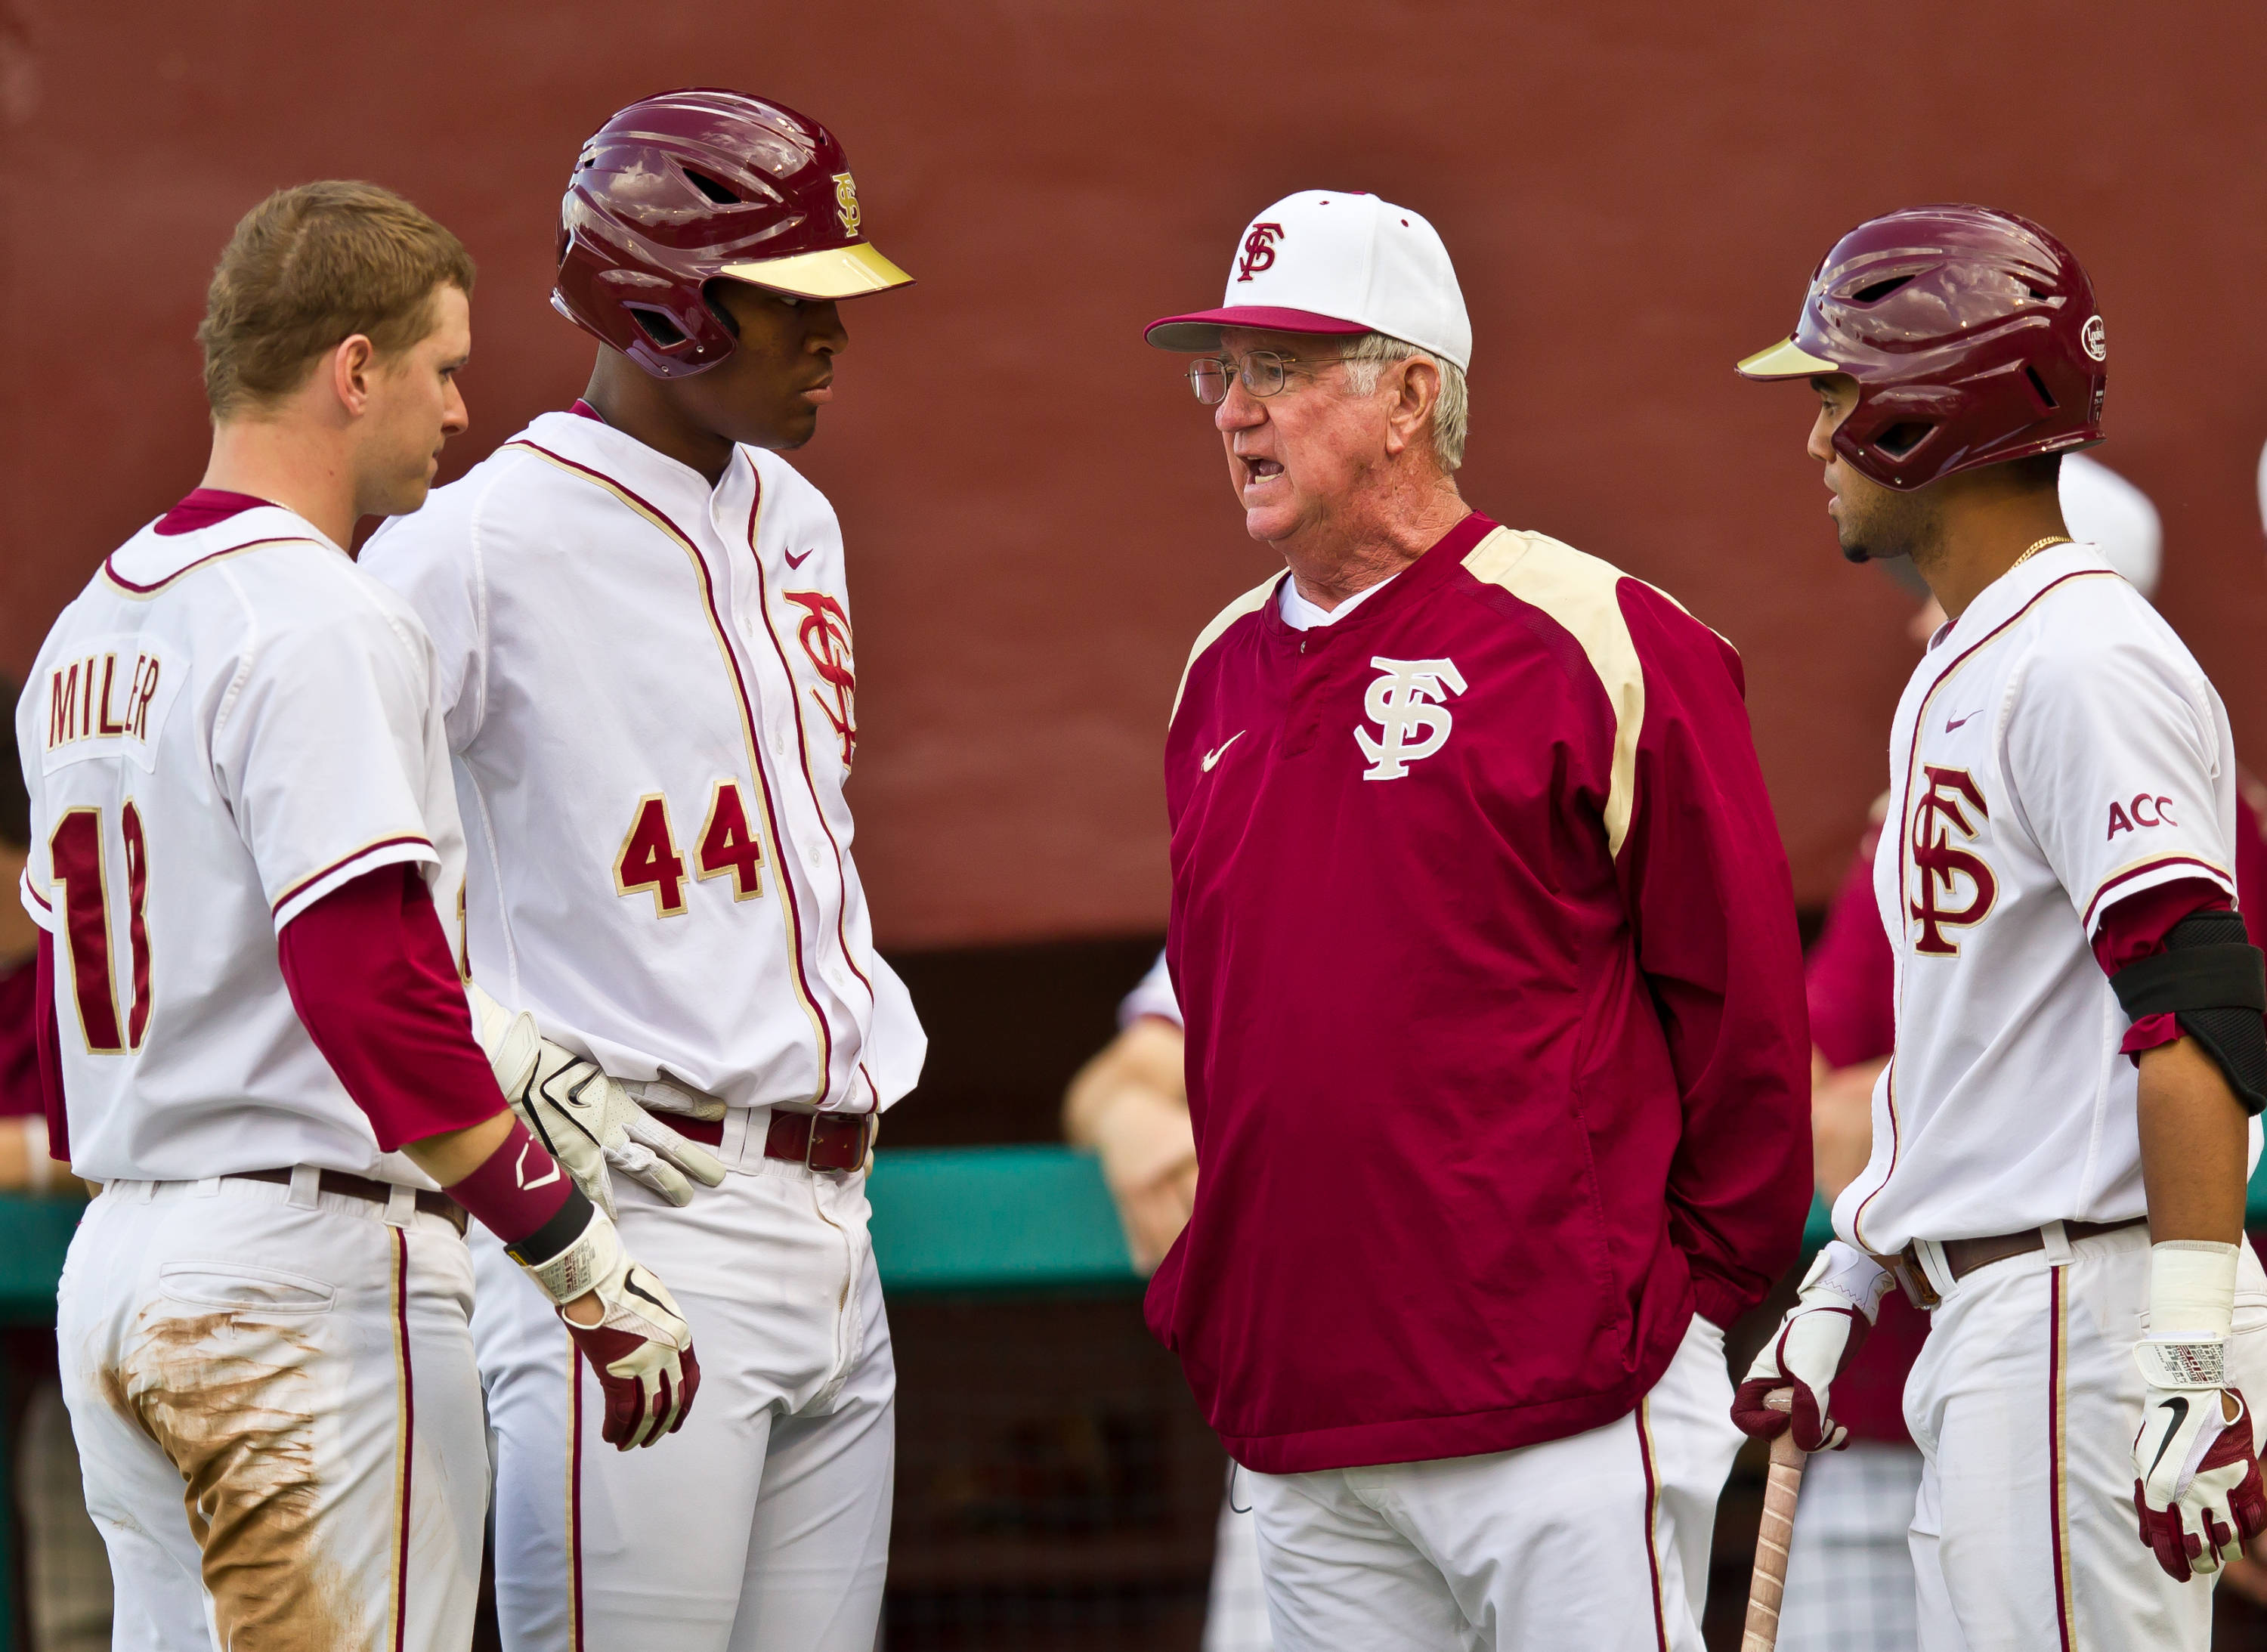 Head coach Mike Martin meets with the players during a mound visit by PC.